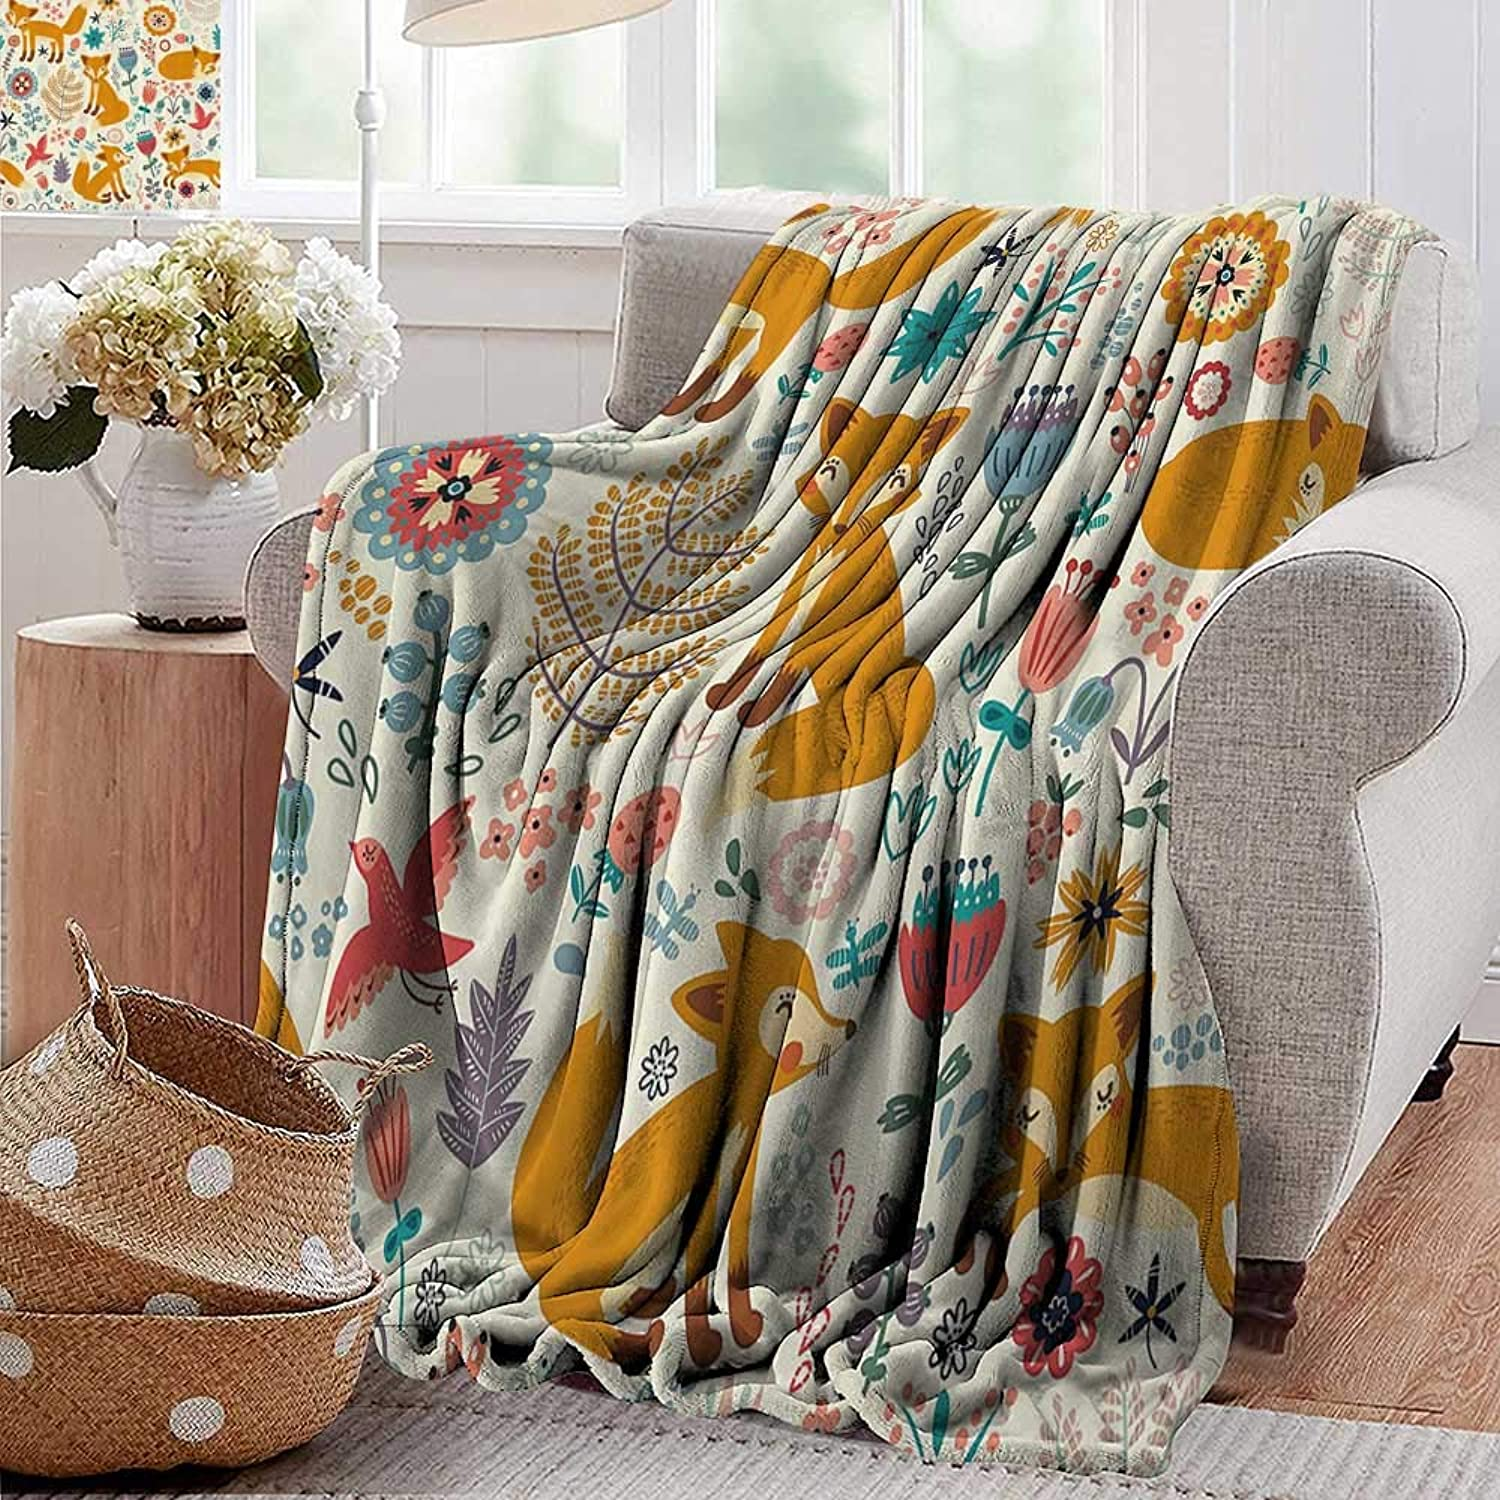 PearlRolan Velvet Touch Ultra Plush,Fox,Natural Wildlife Composition with Cute Foxes Ornate Flowers Flying Birds Kids Nursery,Multicolor,300GSM,Super Soft and Warm,Durable Throw Blanket 50 x60